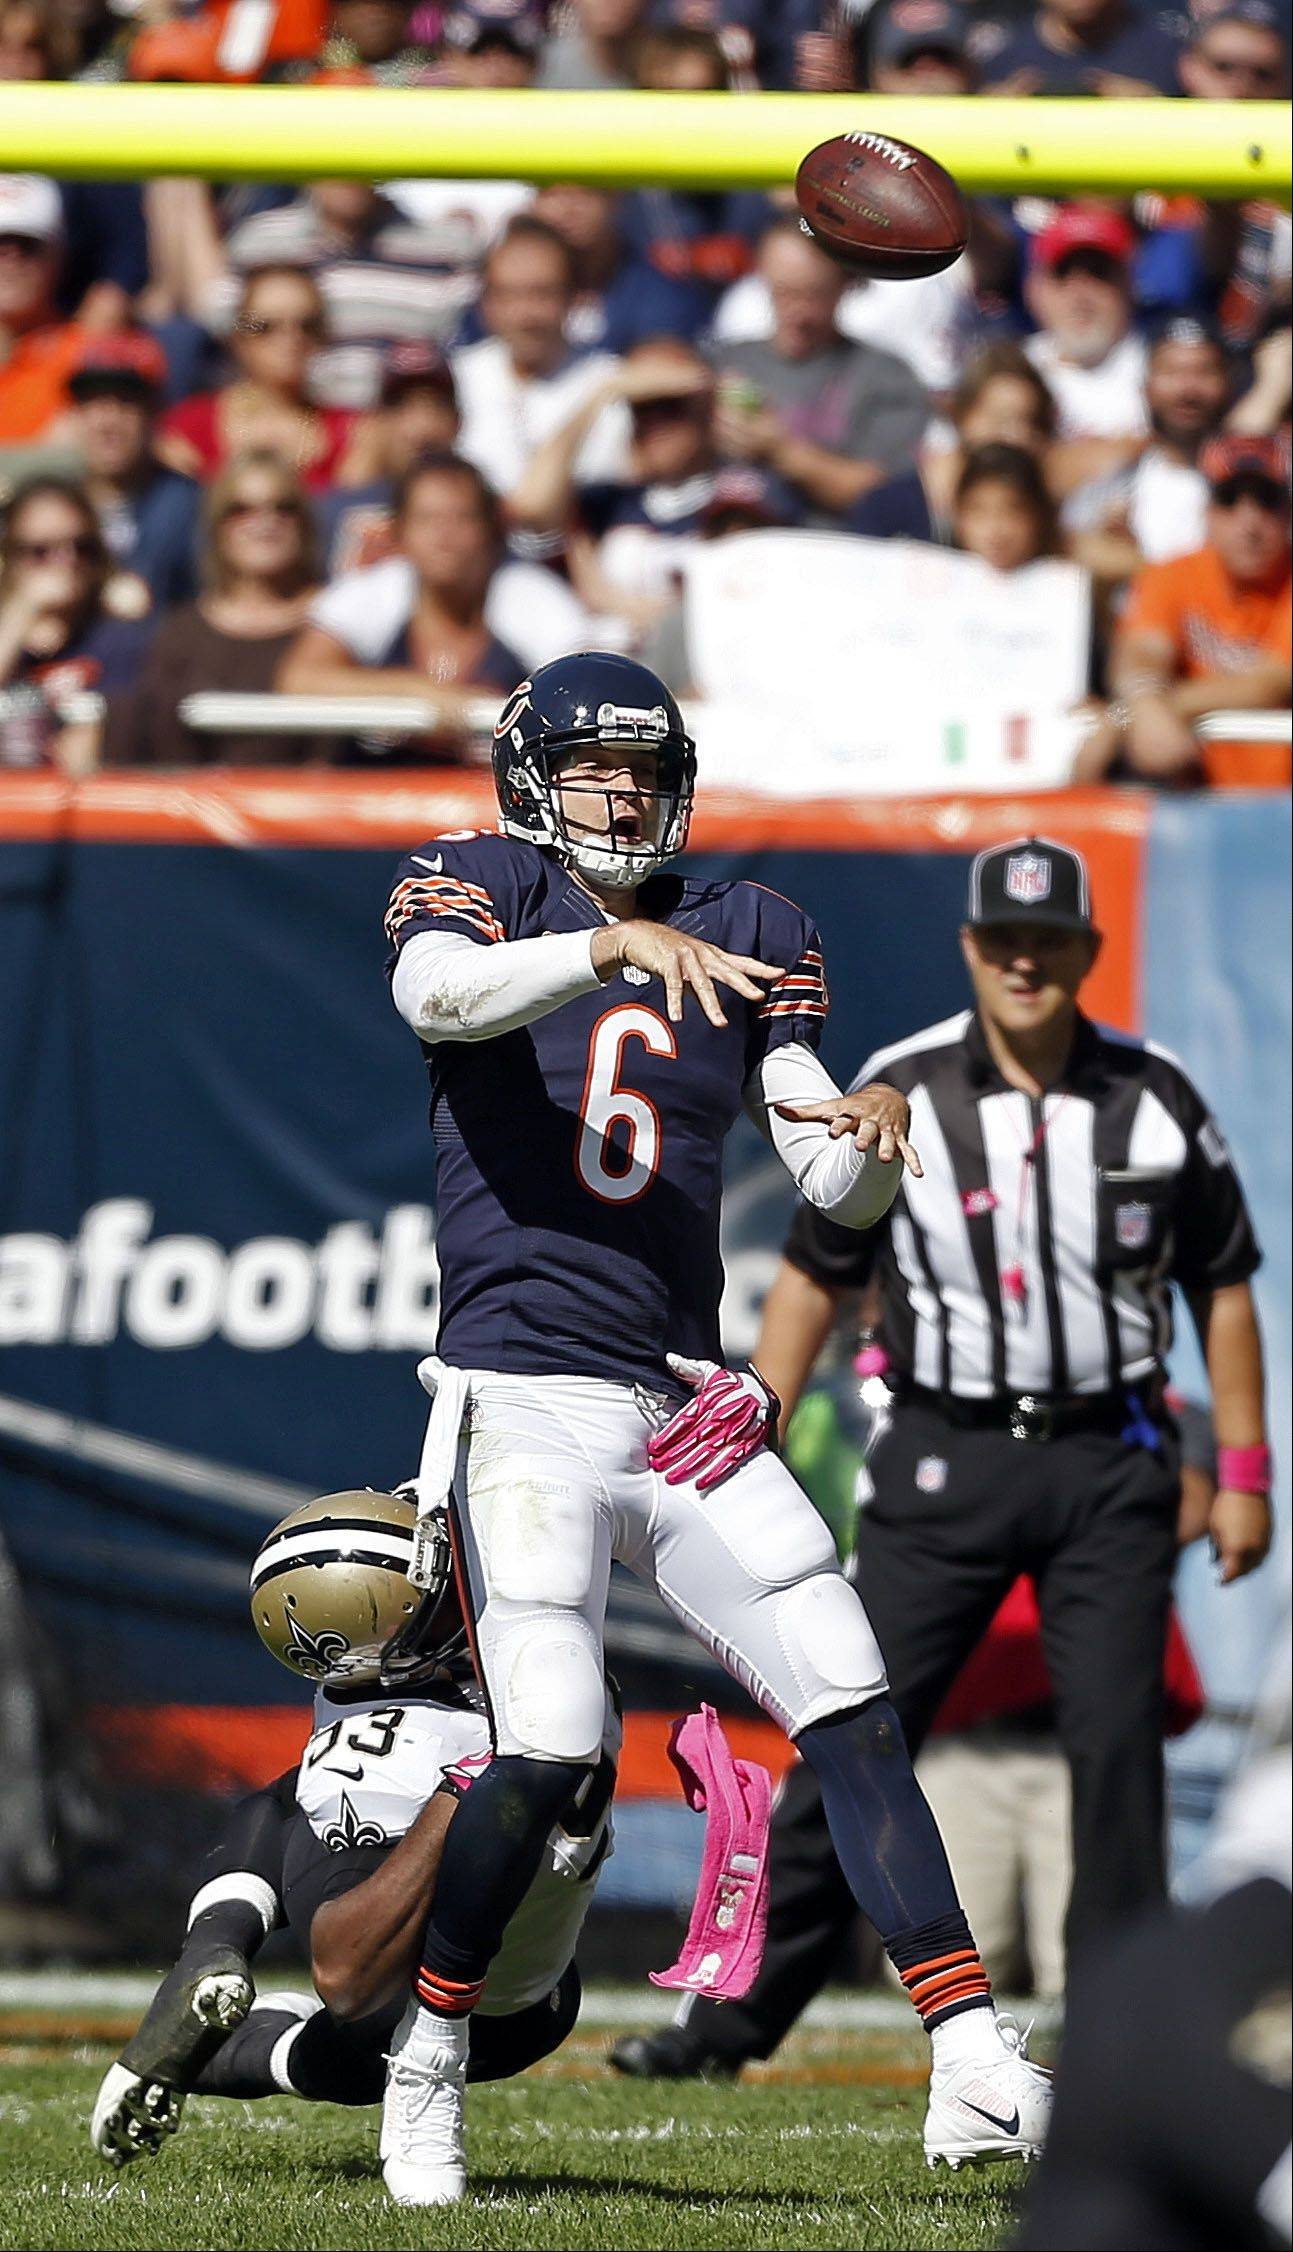 Jay Cutler will make his first start since Week 9 as the Bears are set to take on the Cleveland Browns on Sunday.